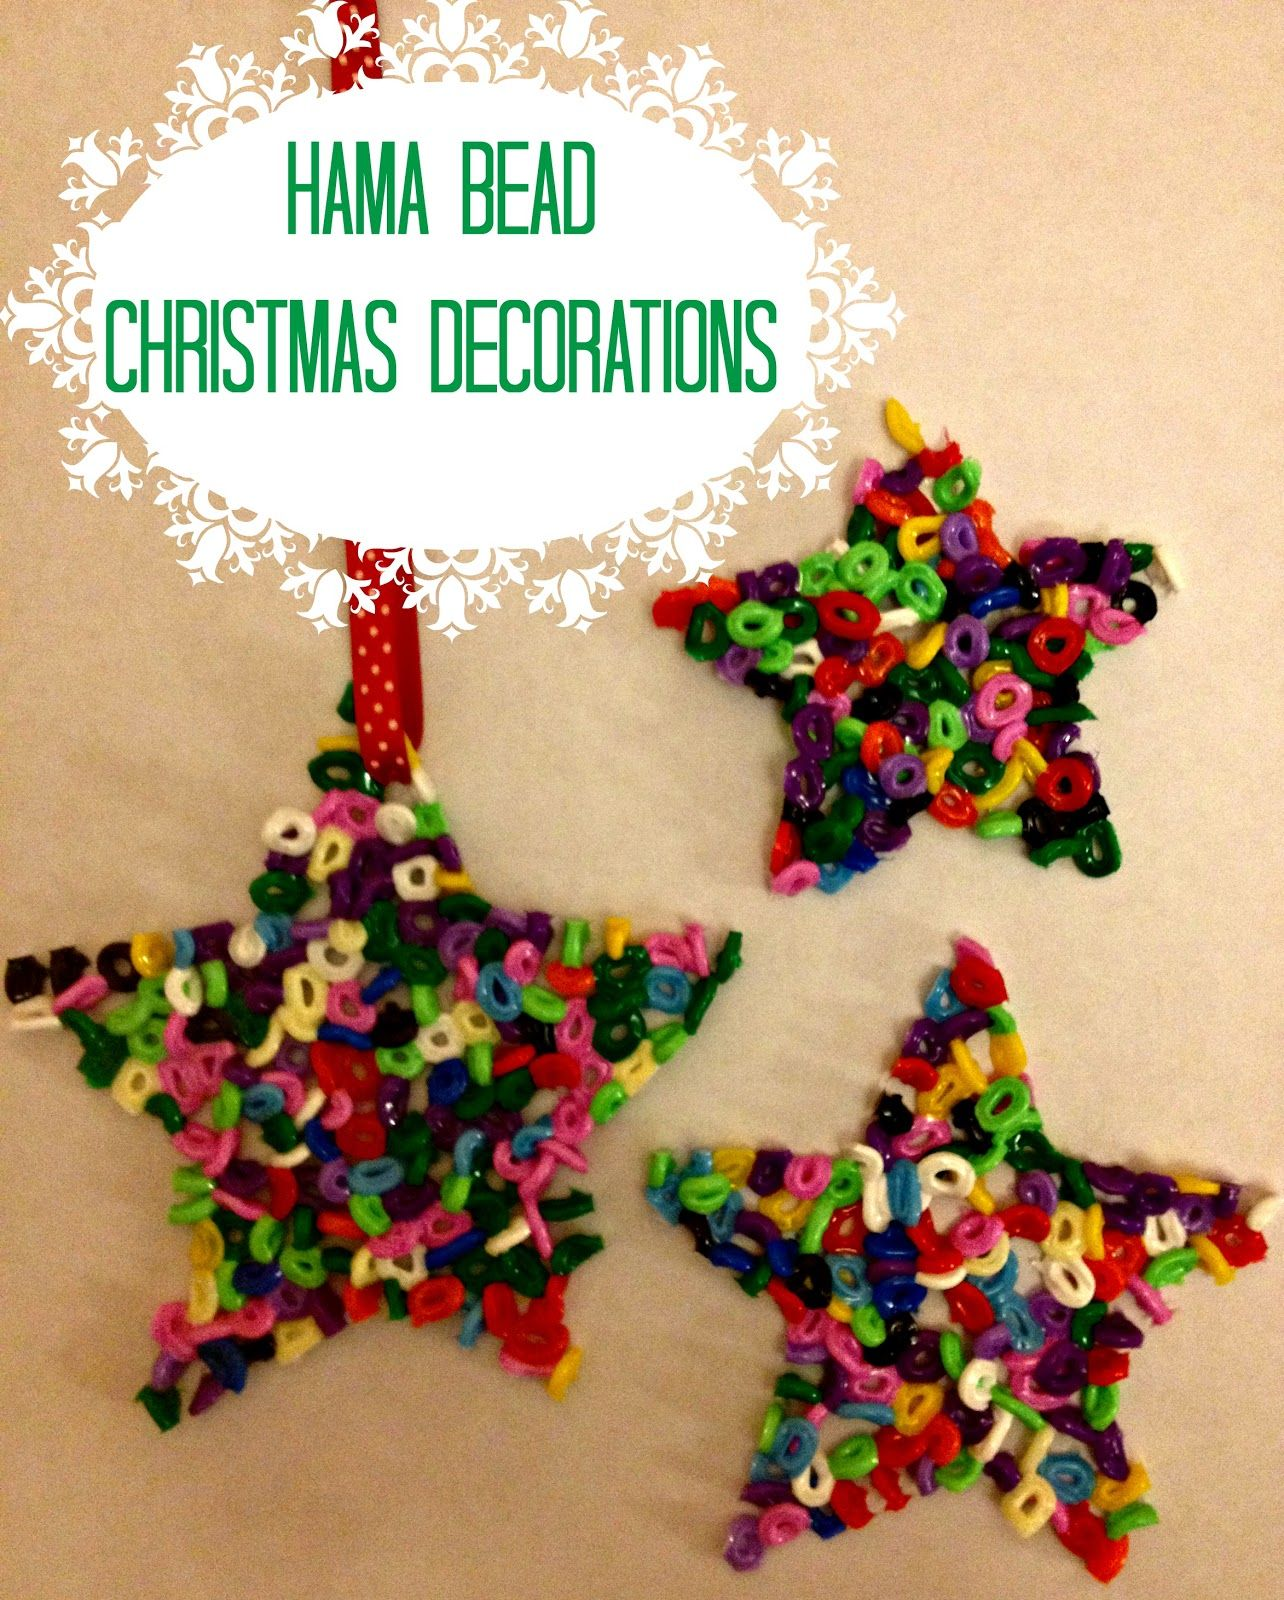 Decorate Christmas Tree With Beads: Hama Beads Christmas Tree Decorations